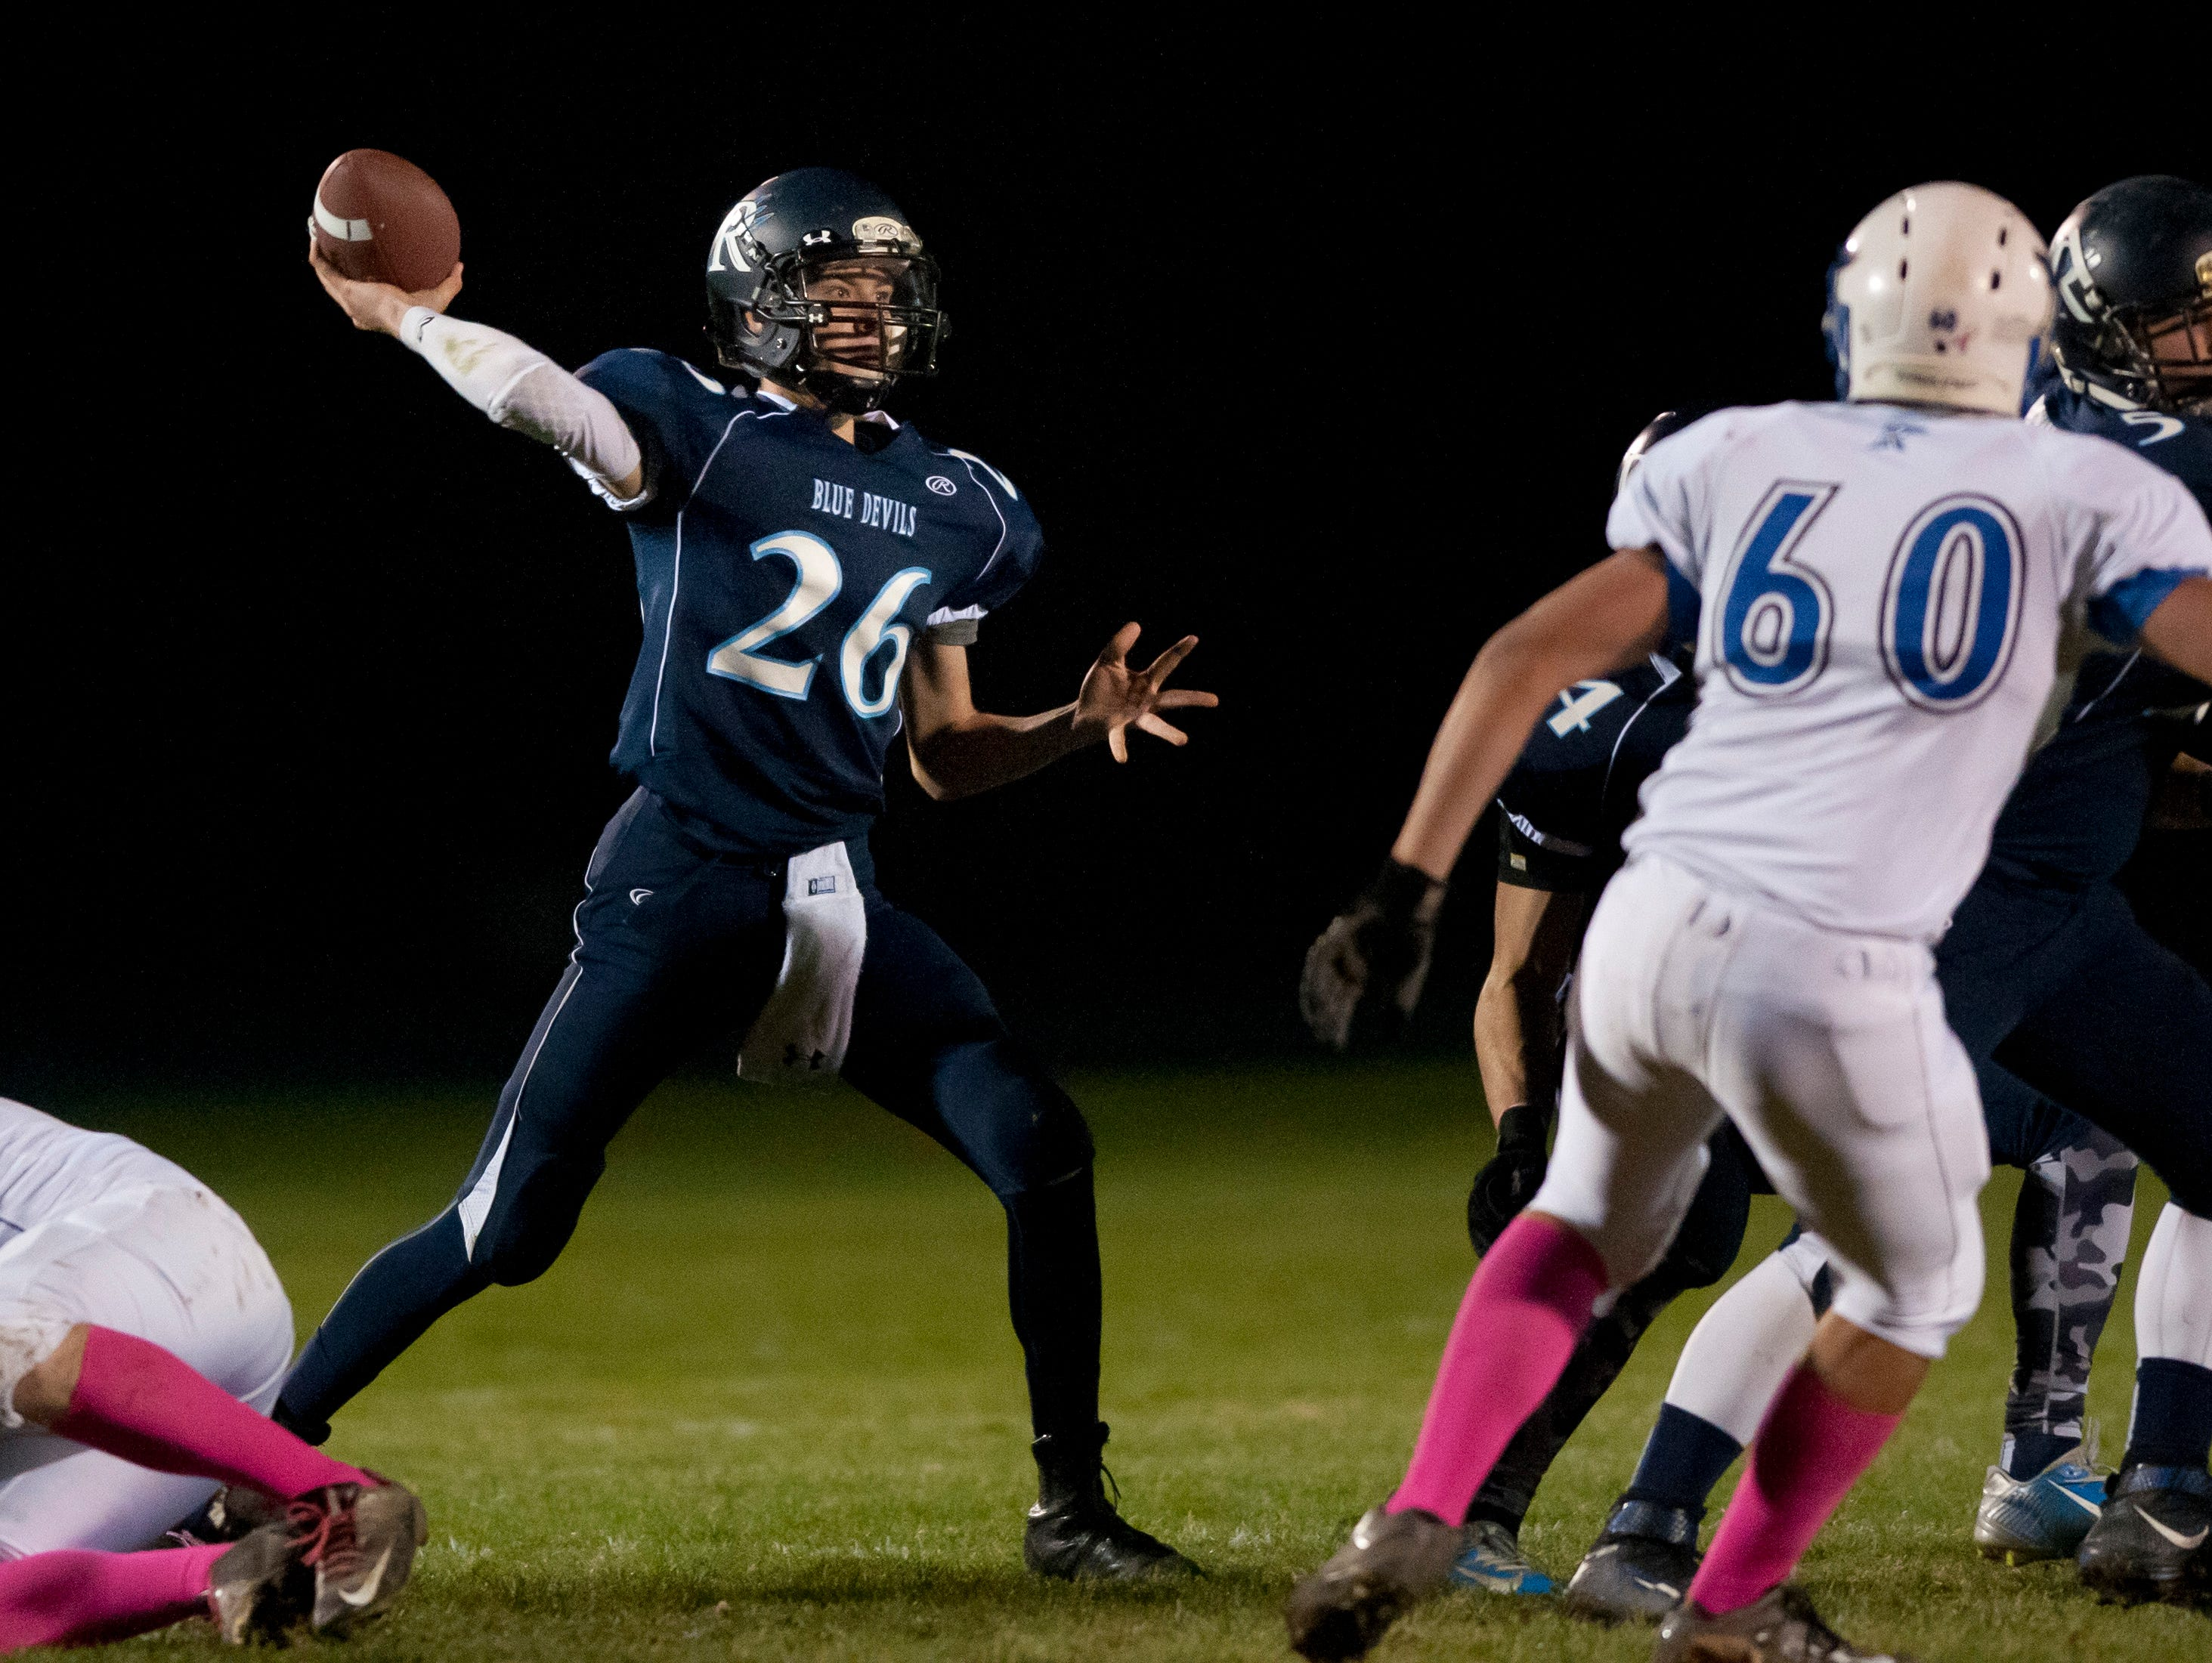 Richmond's Chase Churchill throws a pass during a football game Friday, October 30, 2015 at Richmond High School.